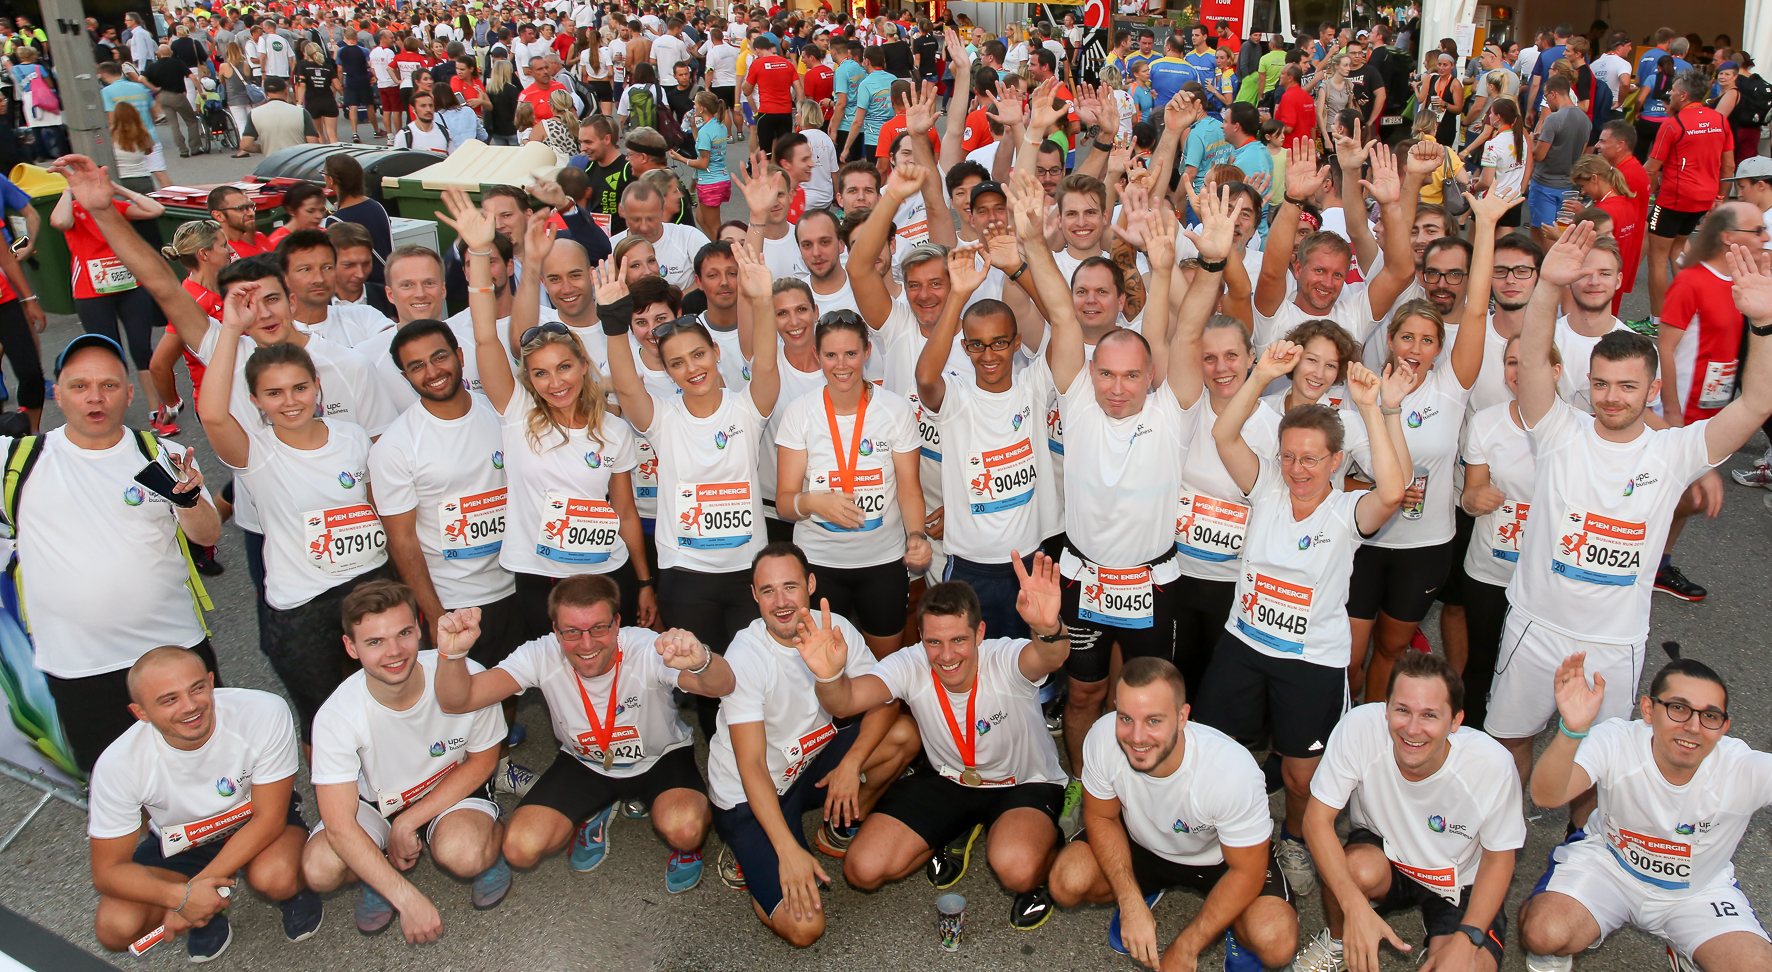 Running Nerd: Wien Energie Business Run 2016